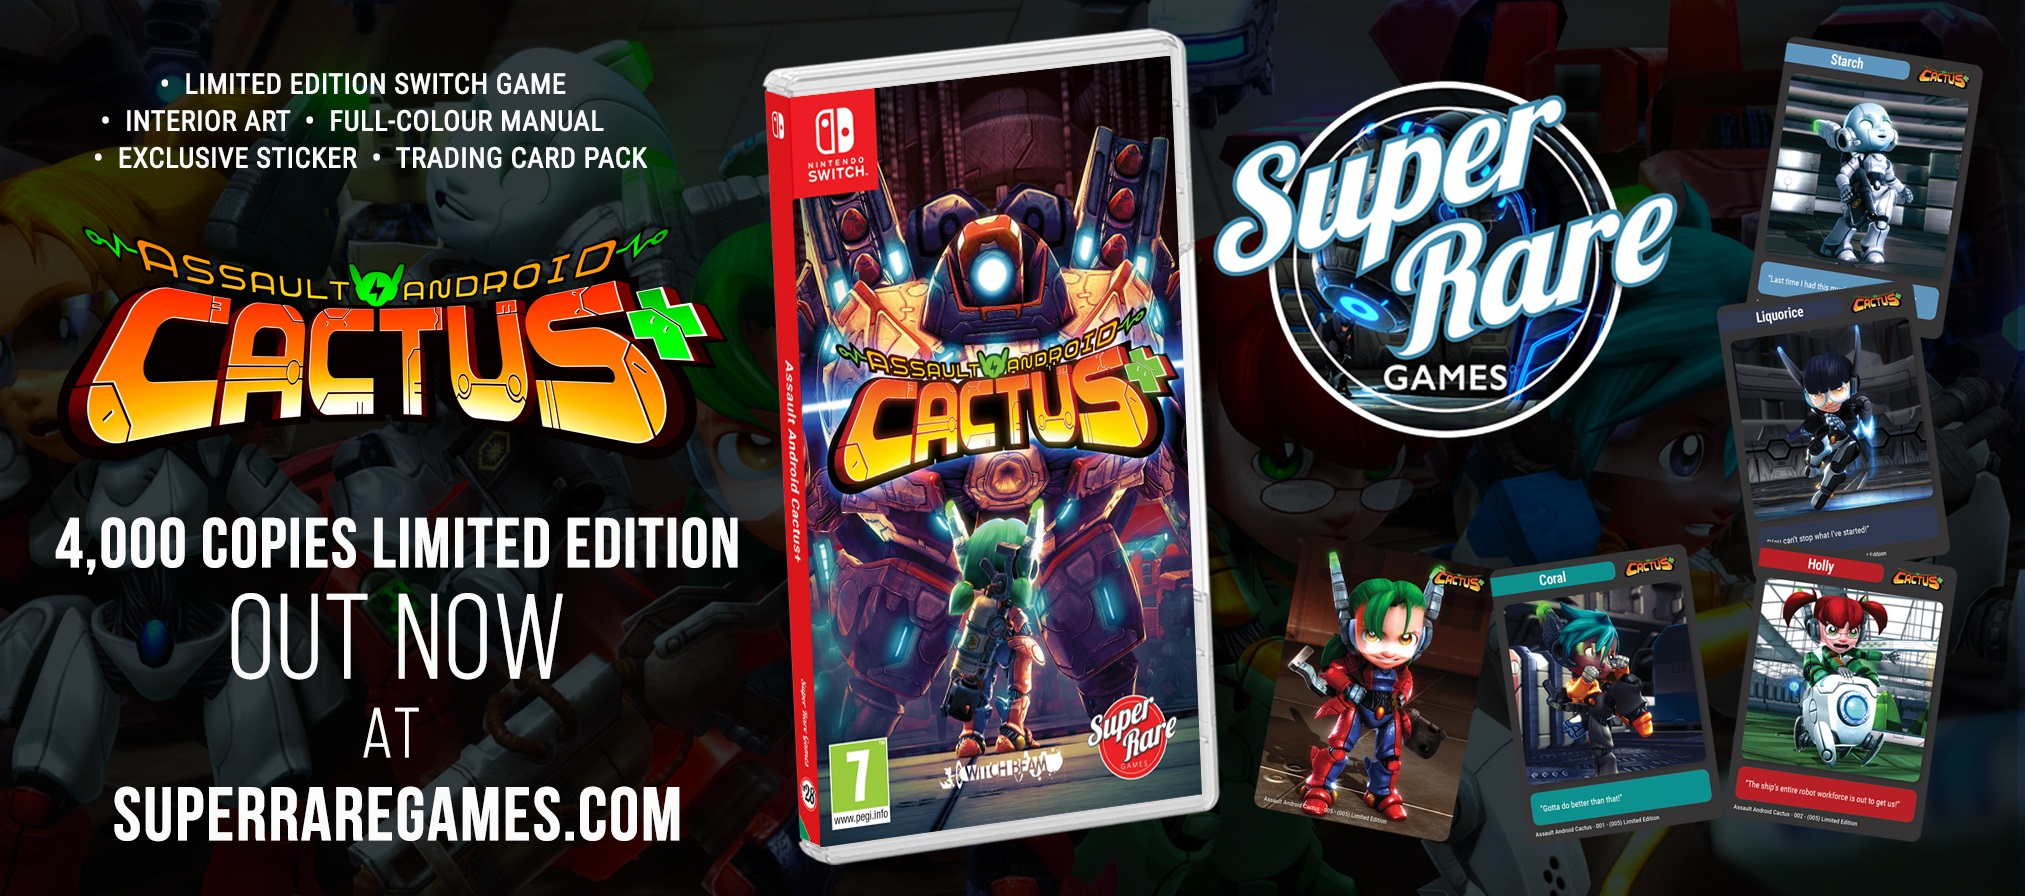 Assault Android Cactus+ Super Rare Games Switch contest